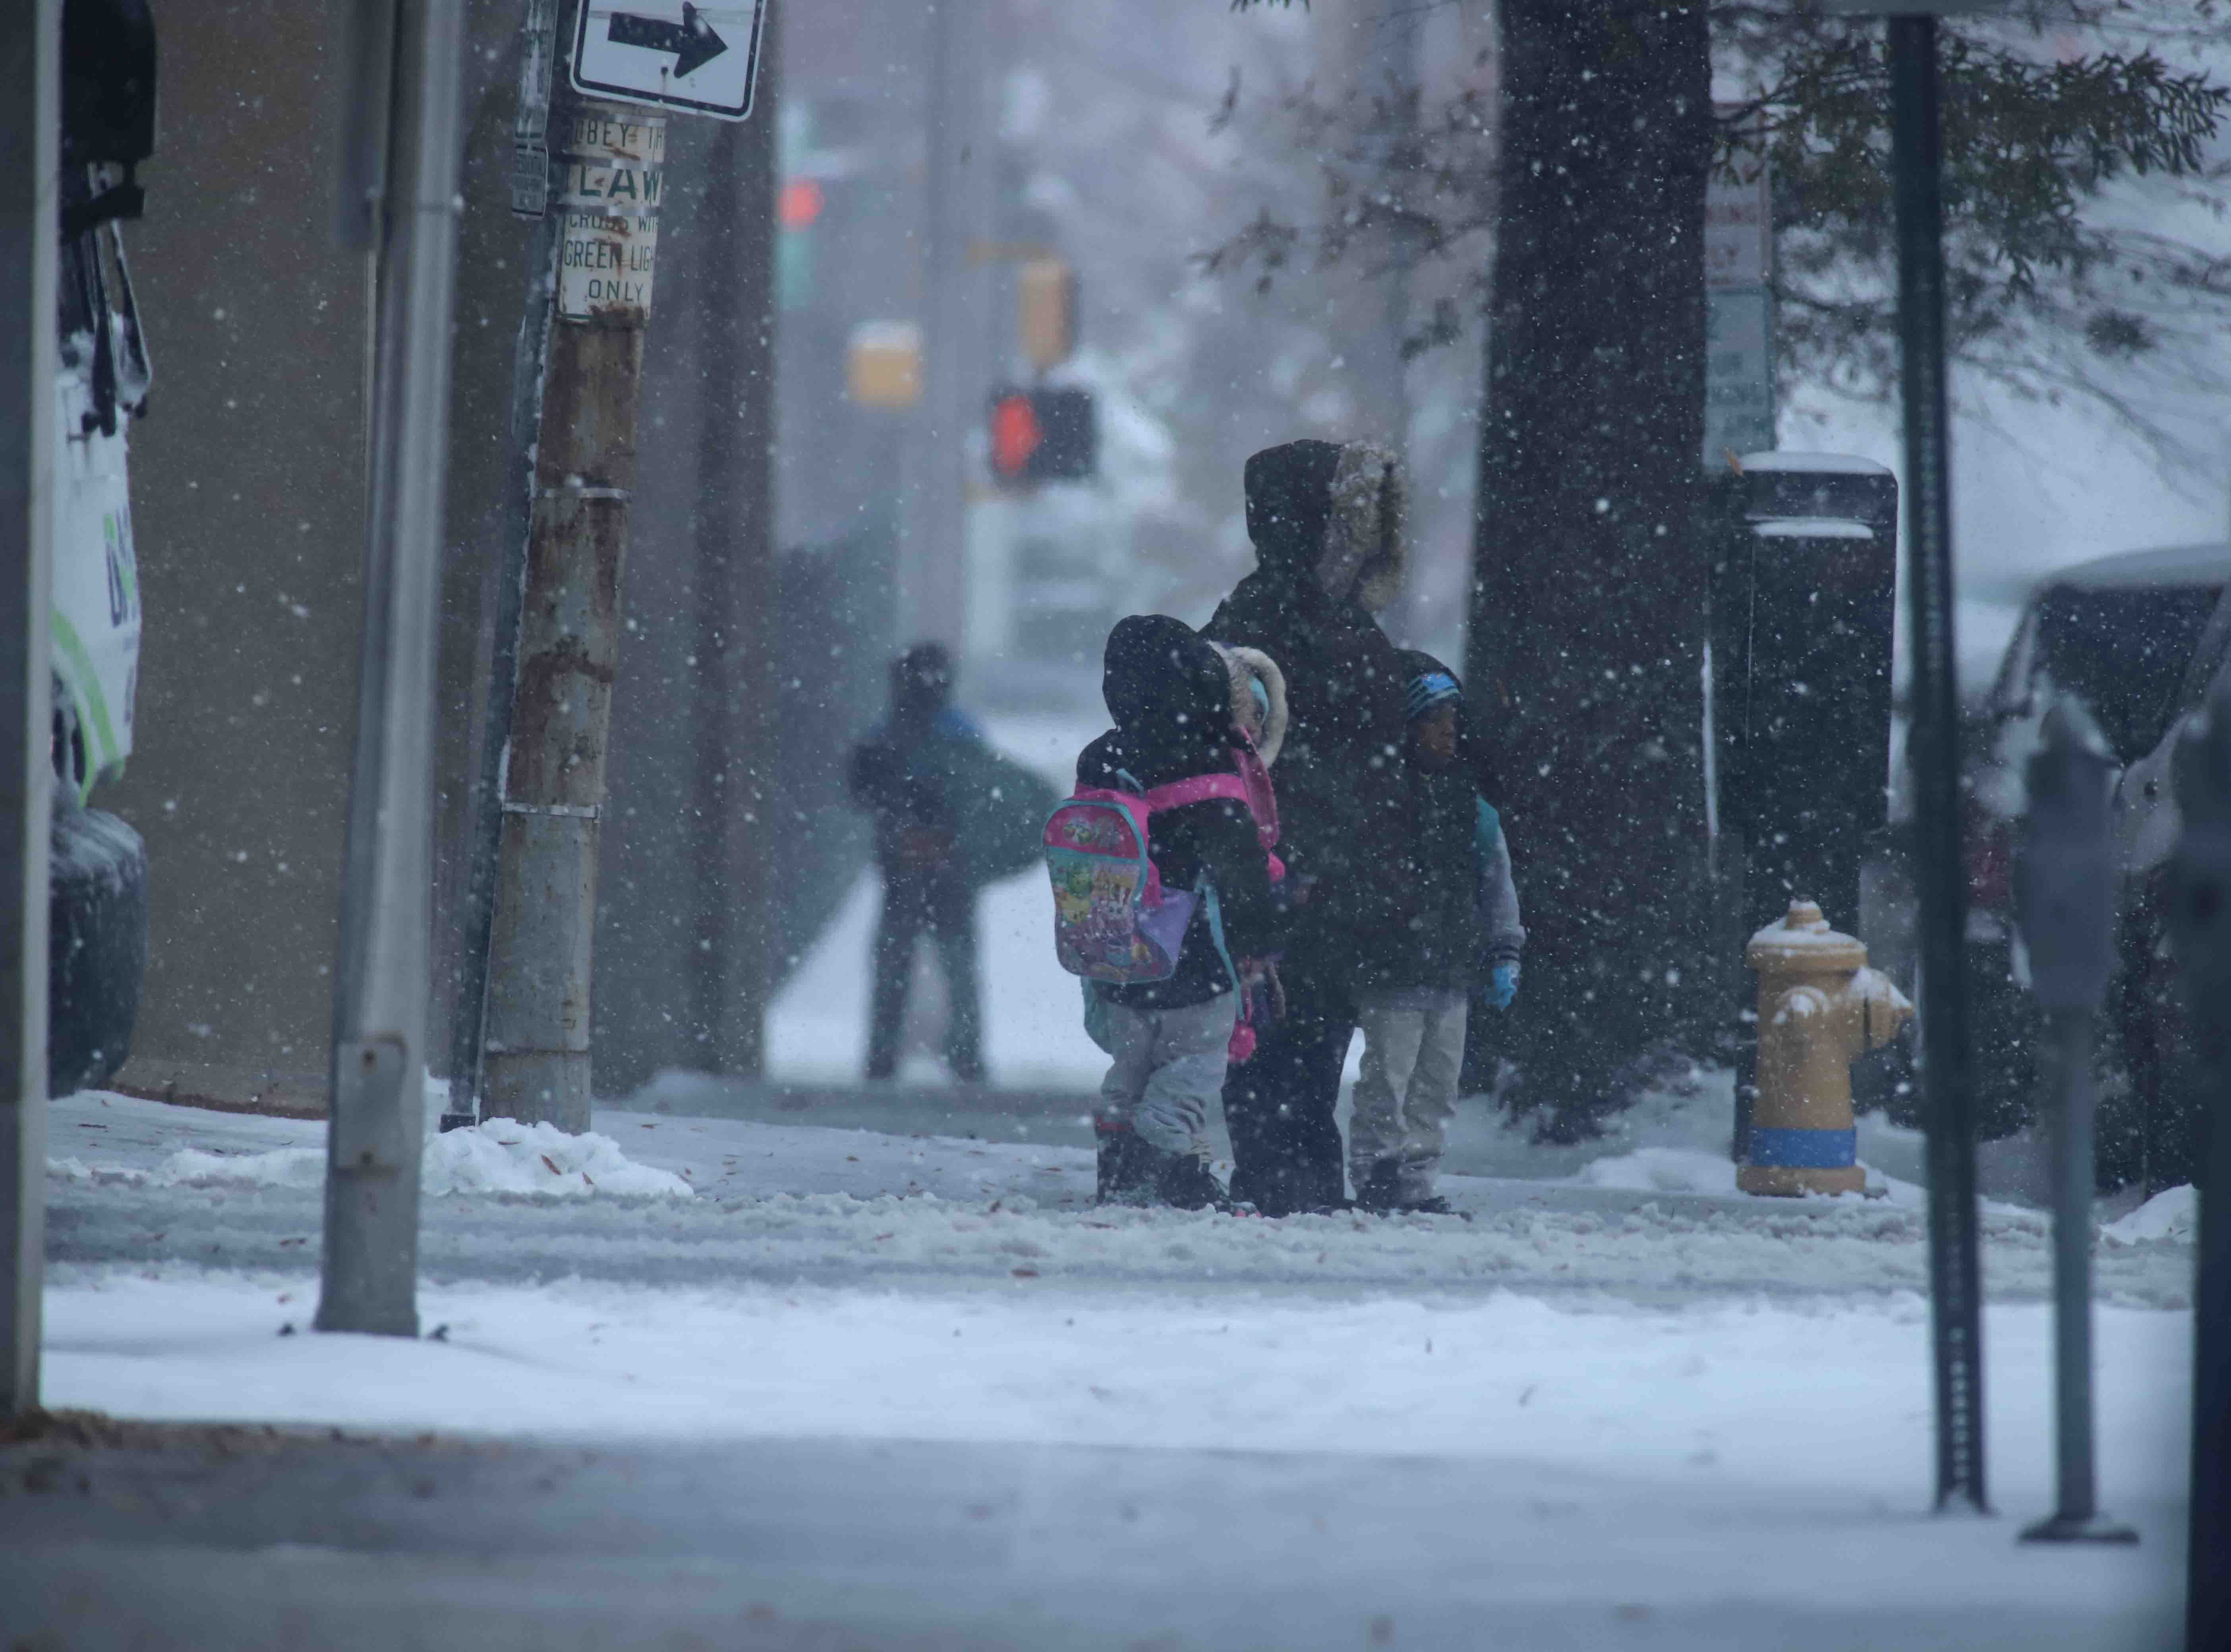 Pedestrians walking down North King Street during heavy snowfall on Thursday, Nov. 15, 2018, in Wilmington.